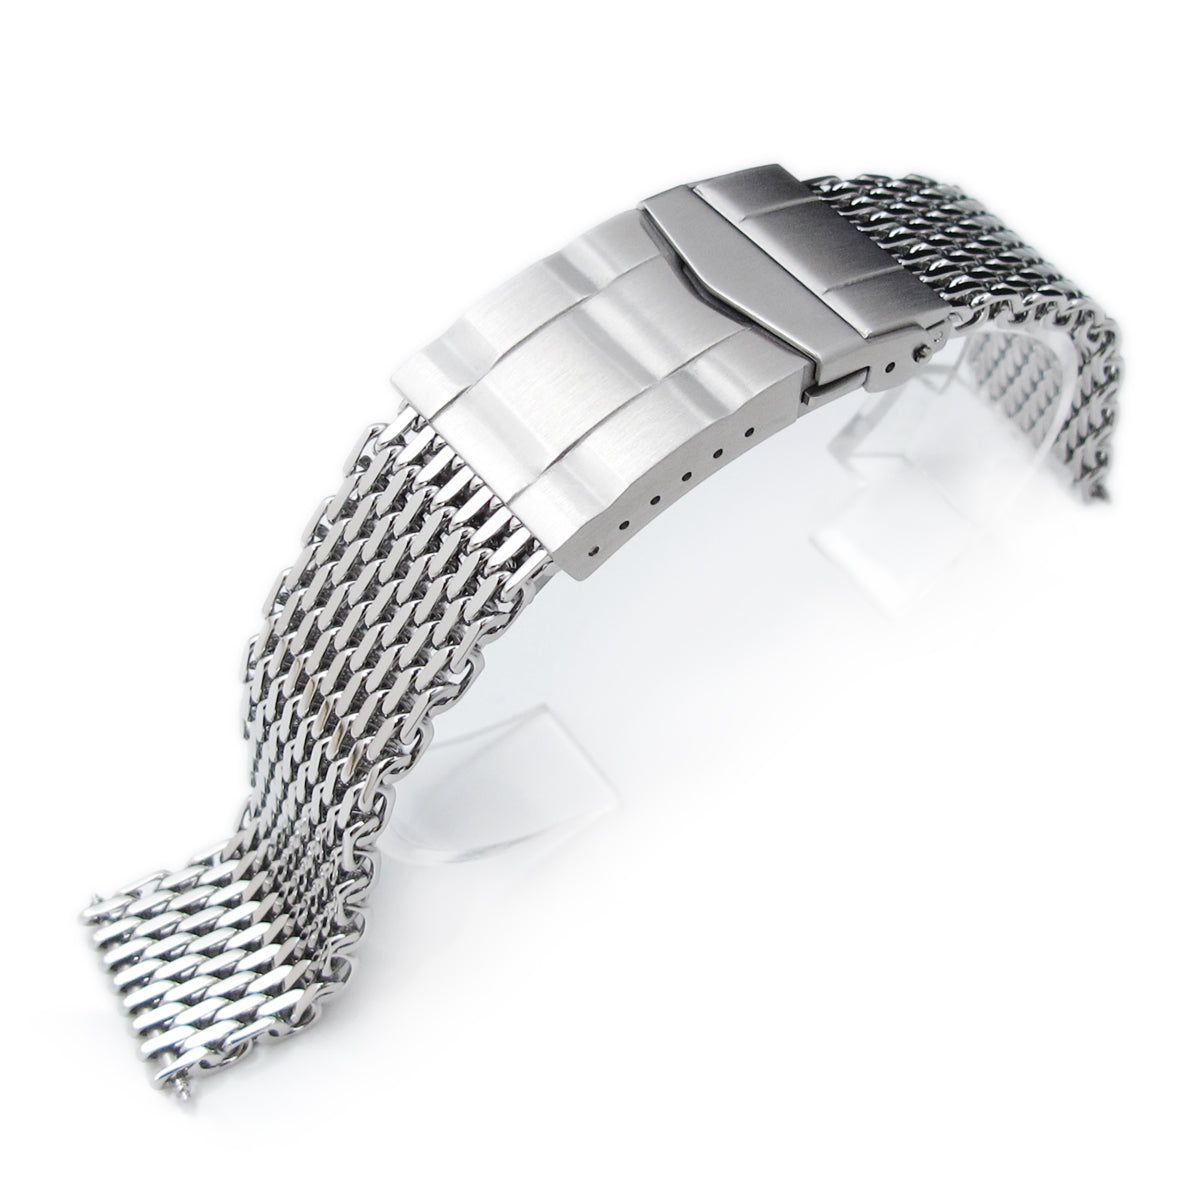 17mm 18mm Ploprof 316 Reform Stainless Steel SHARK Mesh Watch Band SUB Diver Clasp Polished Strapcode Watch Bands